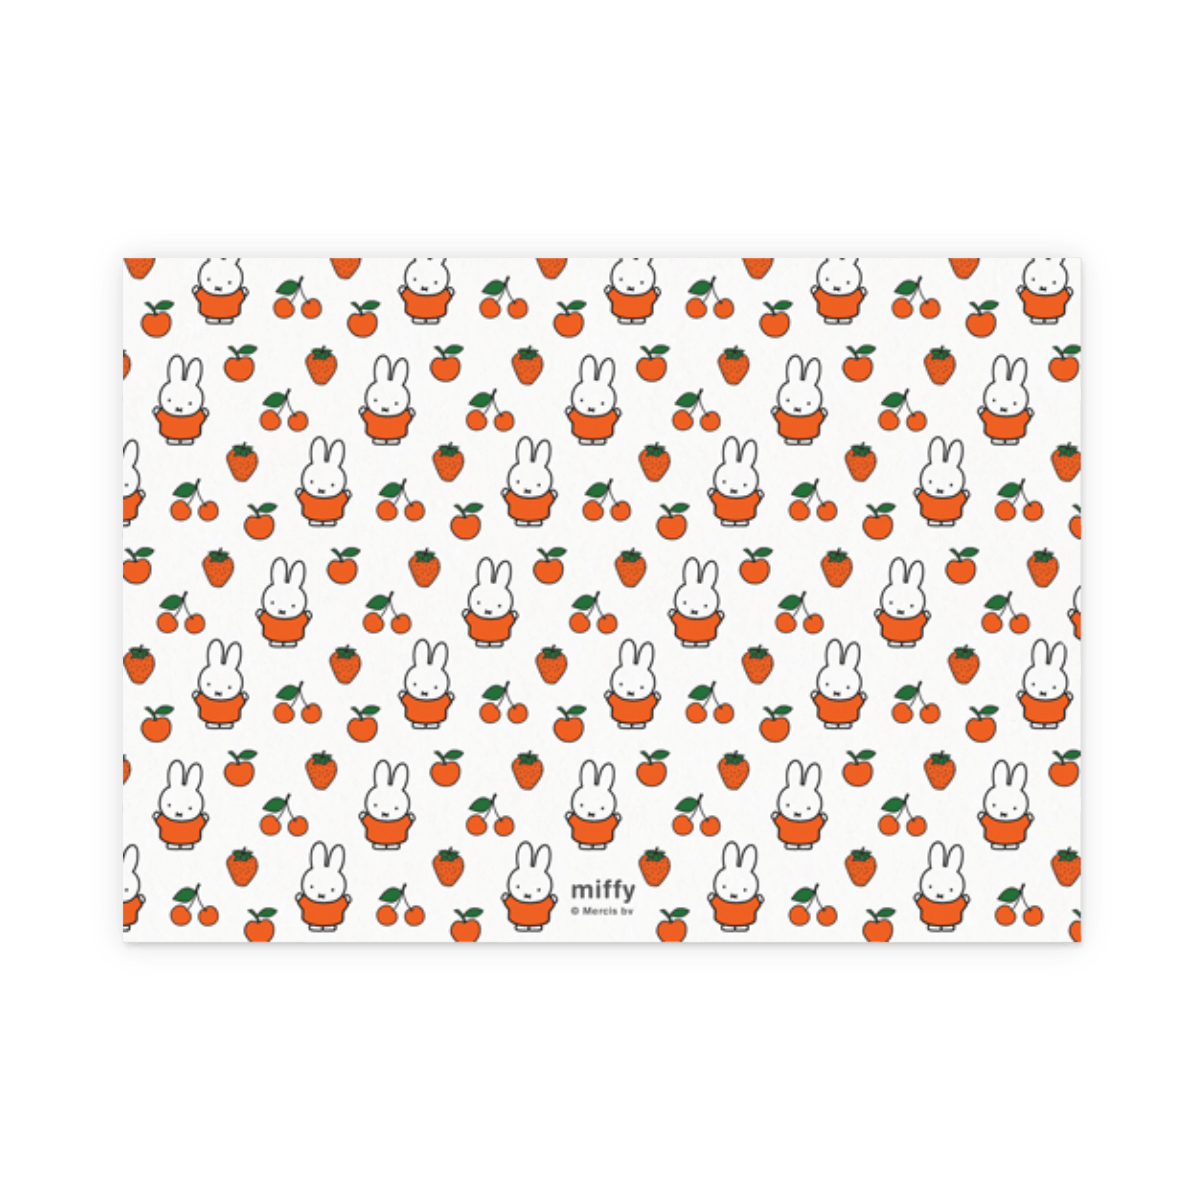 Https%3a%2f%2fwww.papier.com%2fproduct image%2f95354%2f42%2fstrawberry miffy 23872 back 1573569613.png?ixlib=rb 1.1